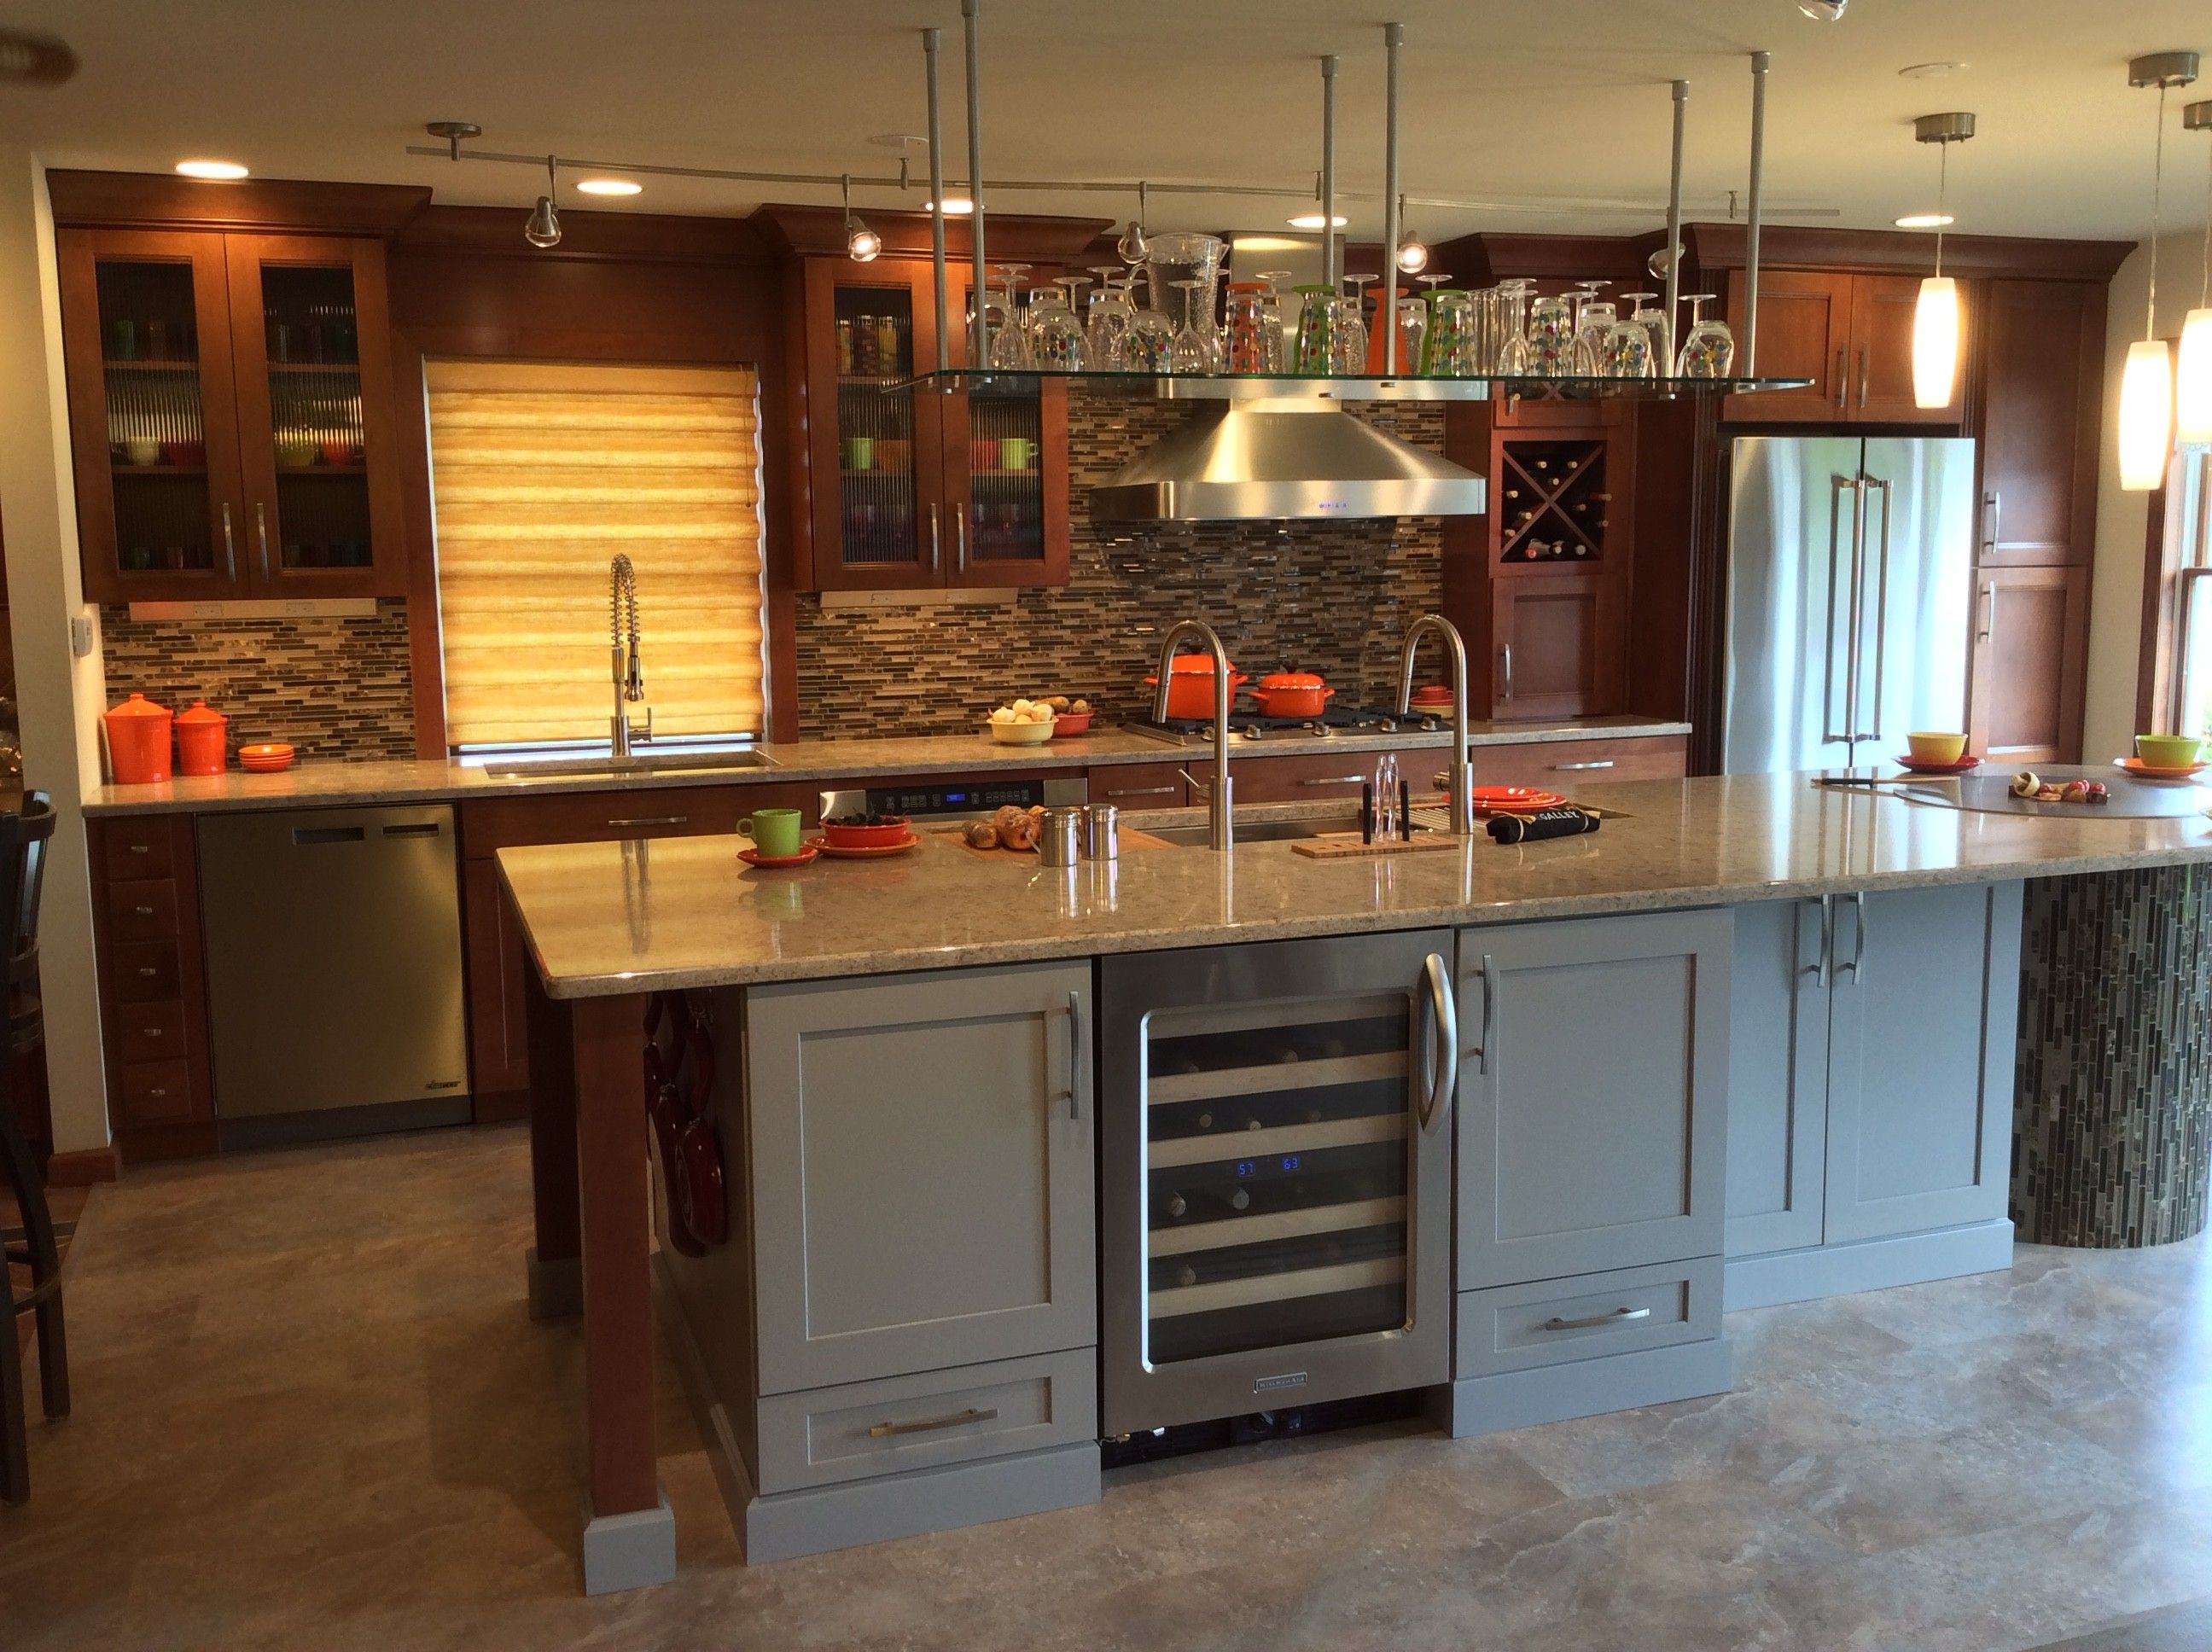 Cost Of New Kitchen Appliances How Much Does A Direct Kitchens Ideas